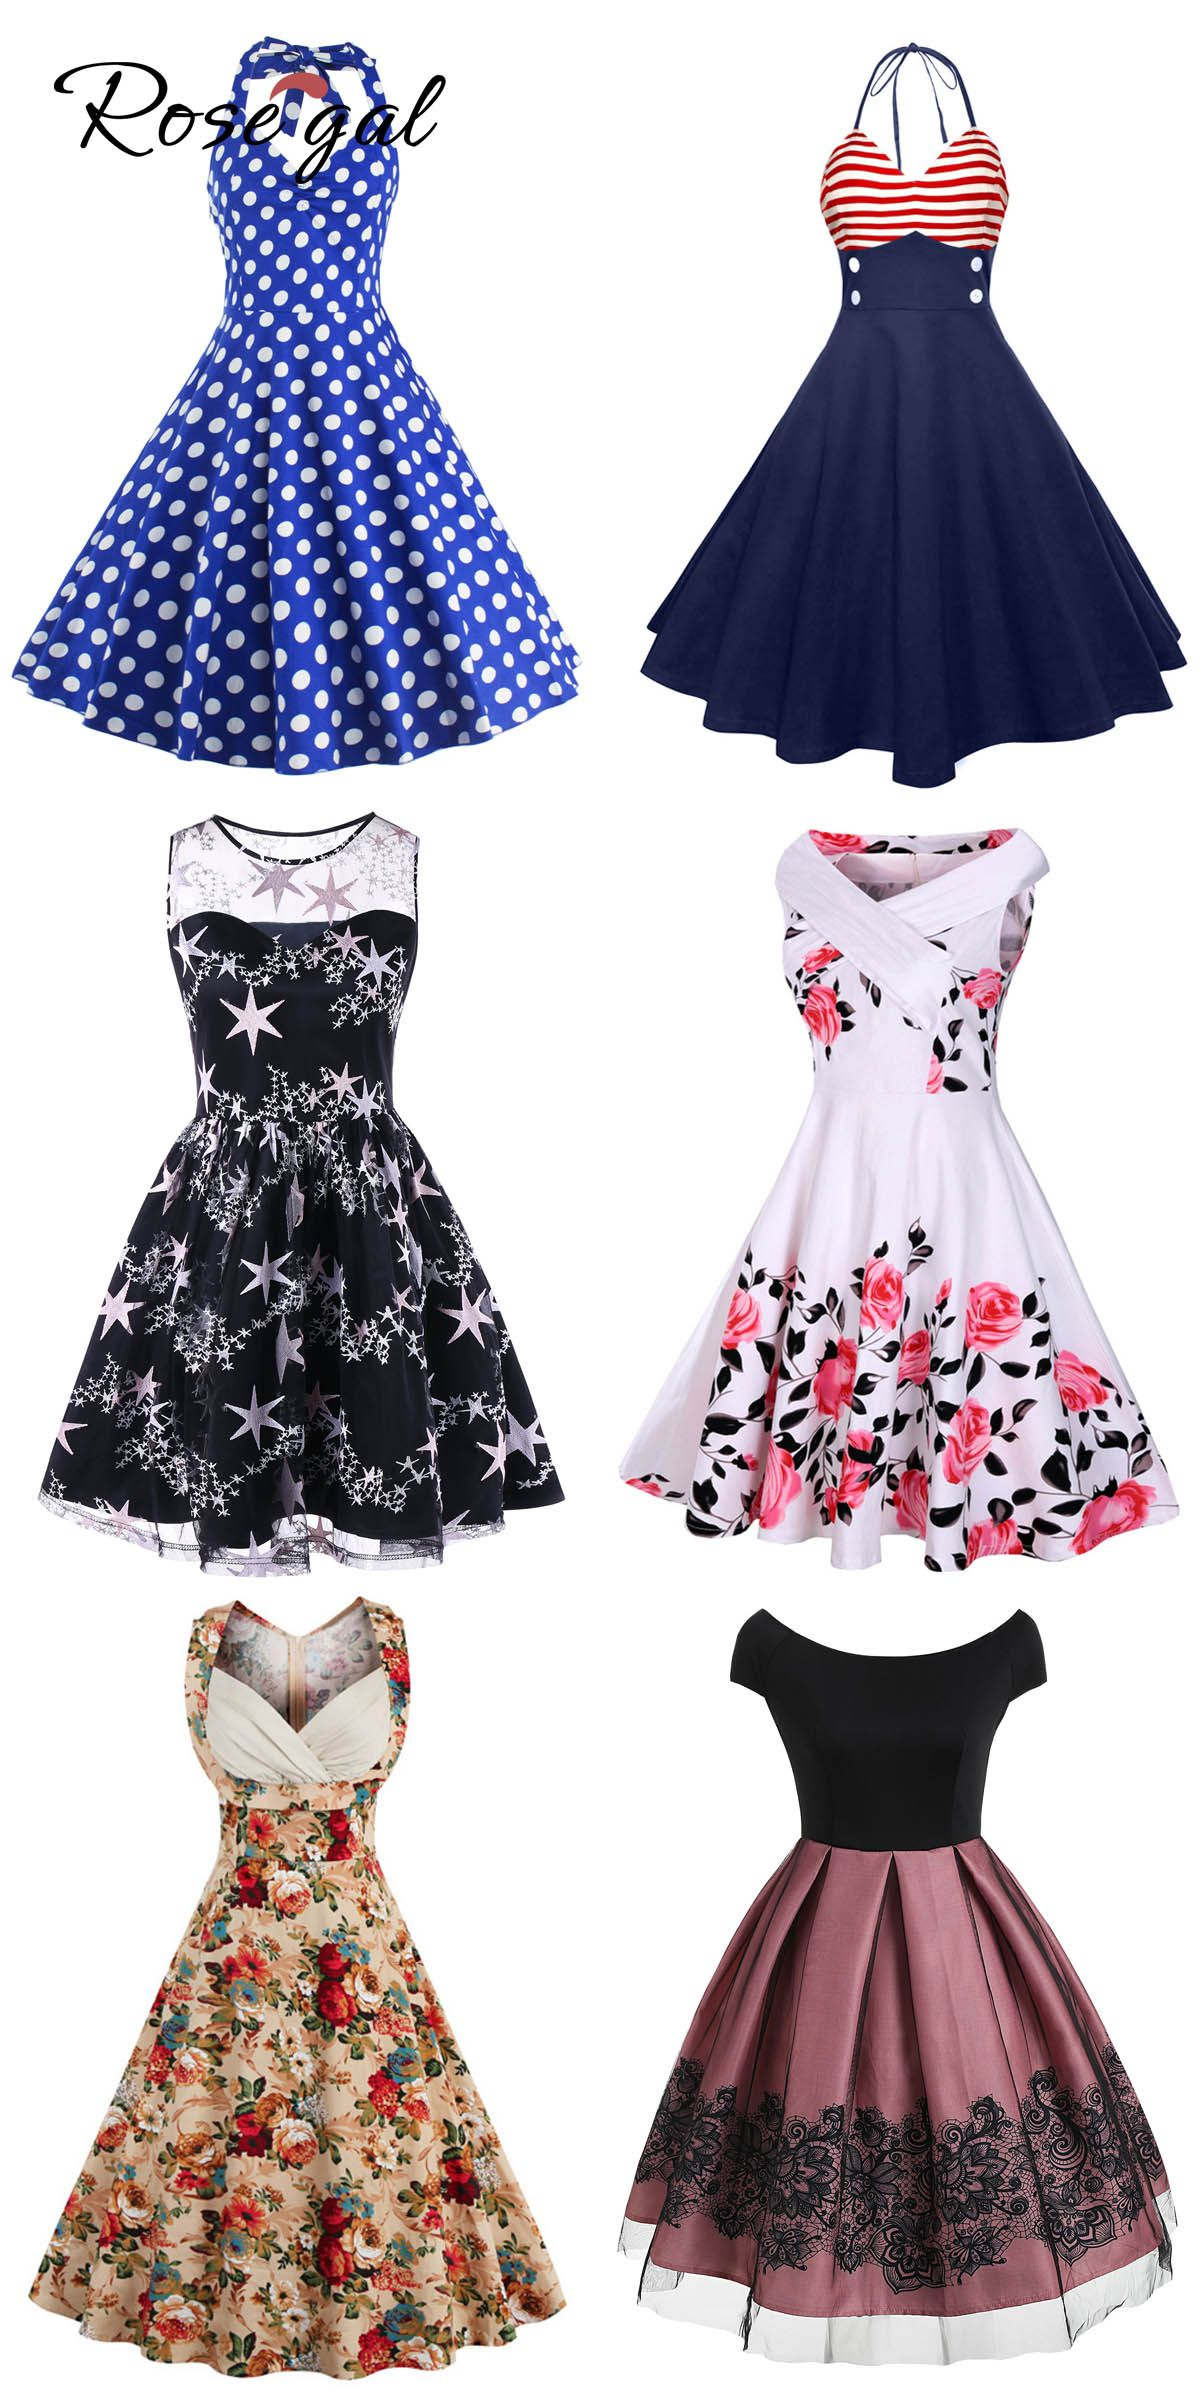 Free Shipment Worldwide Up To 80 Off Rosegal Vintage Fashion Retro Style Derby Dress For Women Vintage Dress Shop Fashion Dresses Unique Vintage Dresses